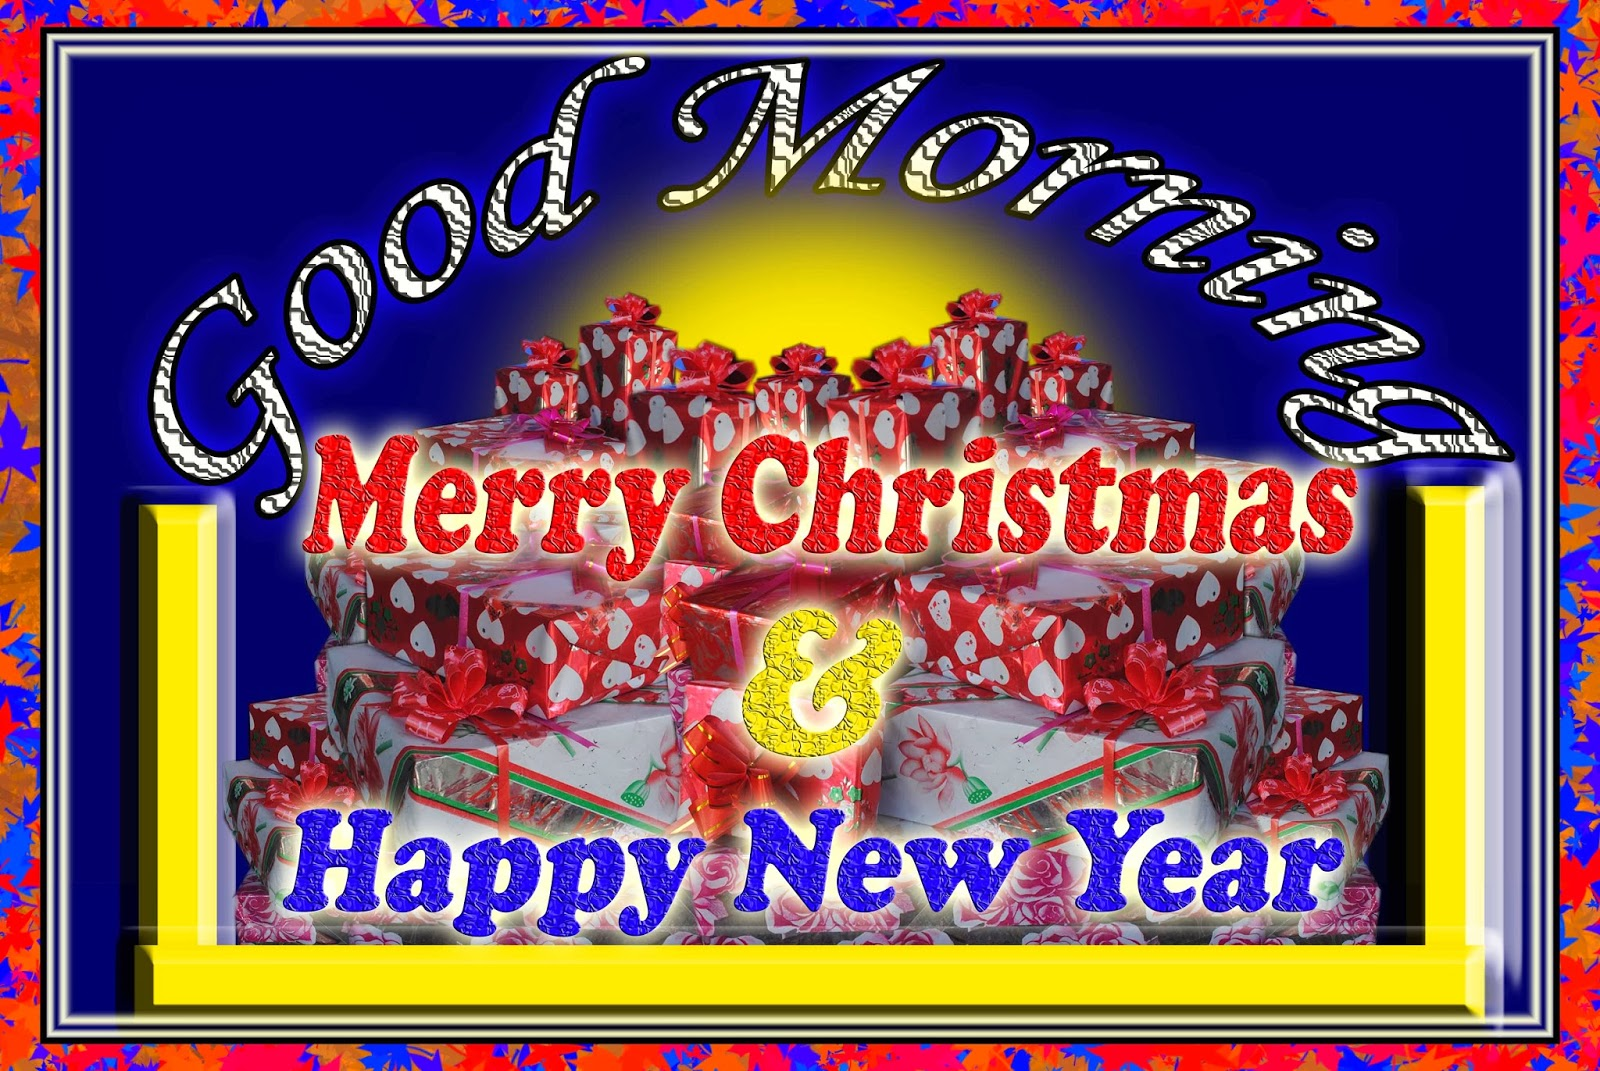 Good Morning, Merry Christmas And Happy Newyear 2014